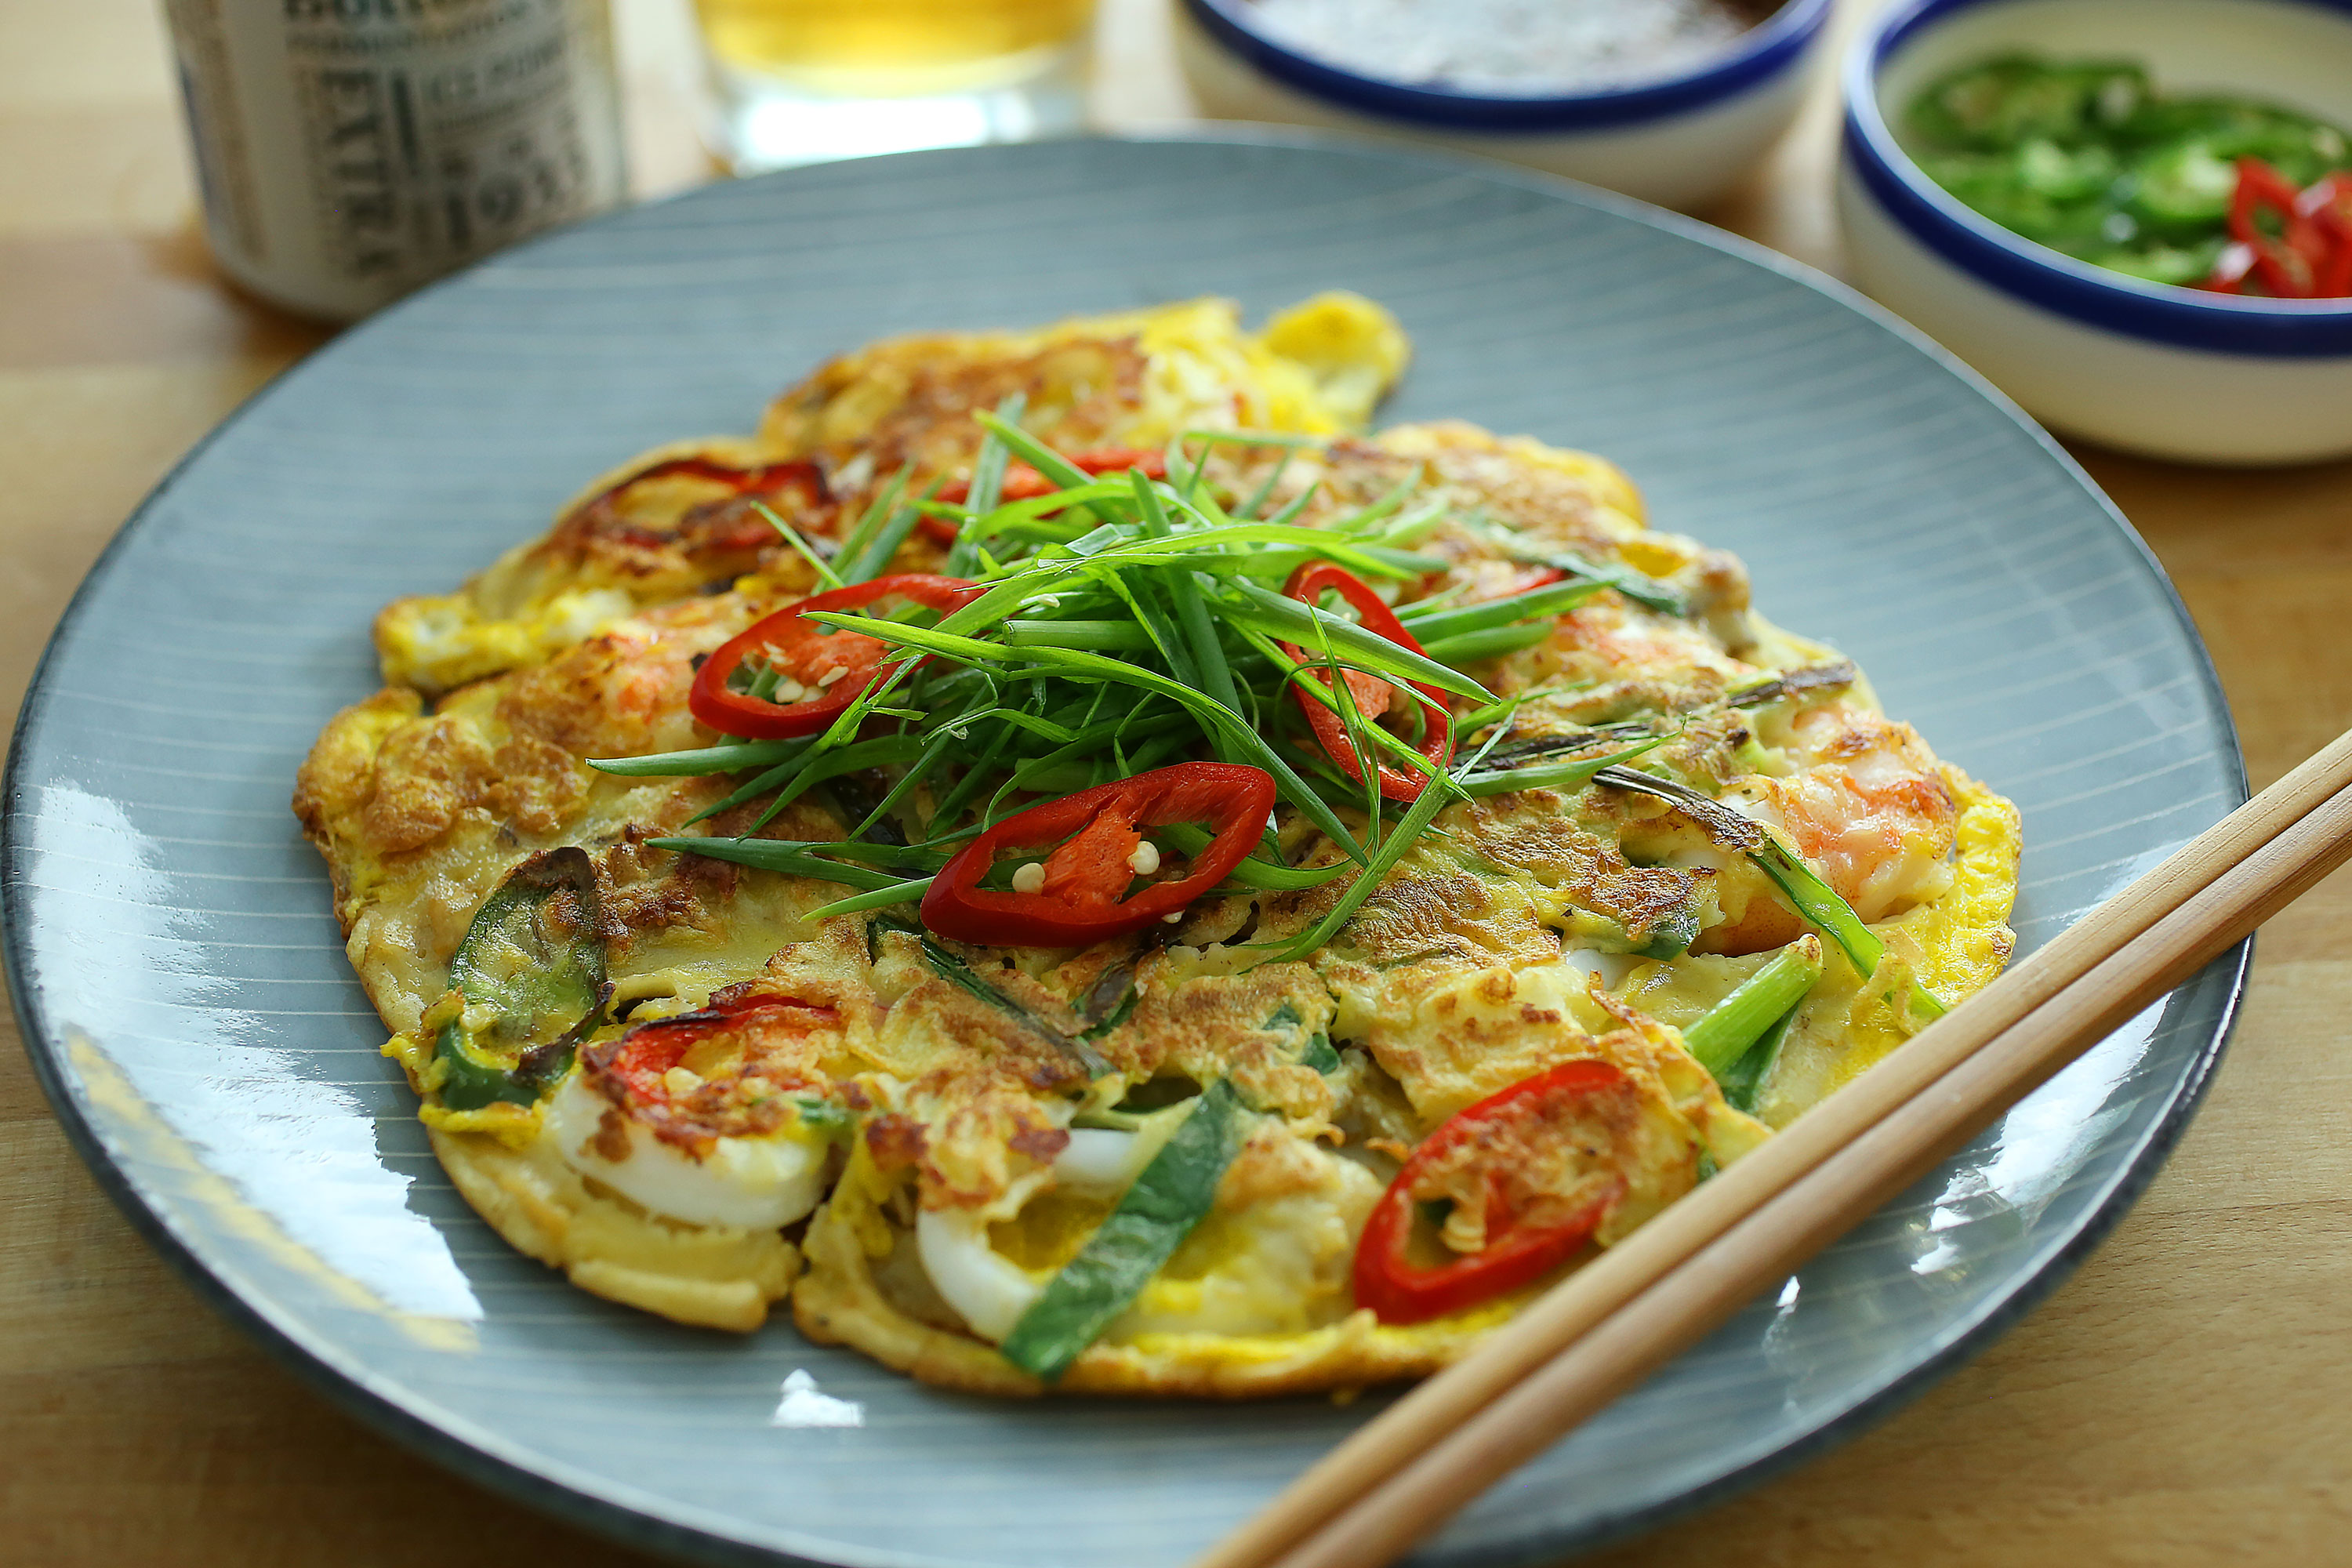 Korean Seafood Pancake - 韩式海鲜煎饼